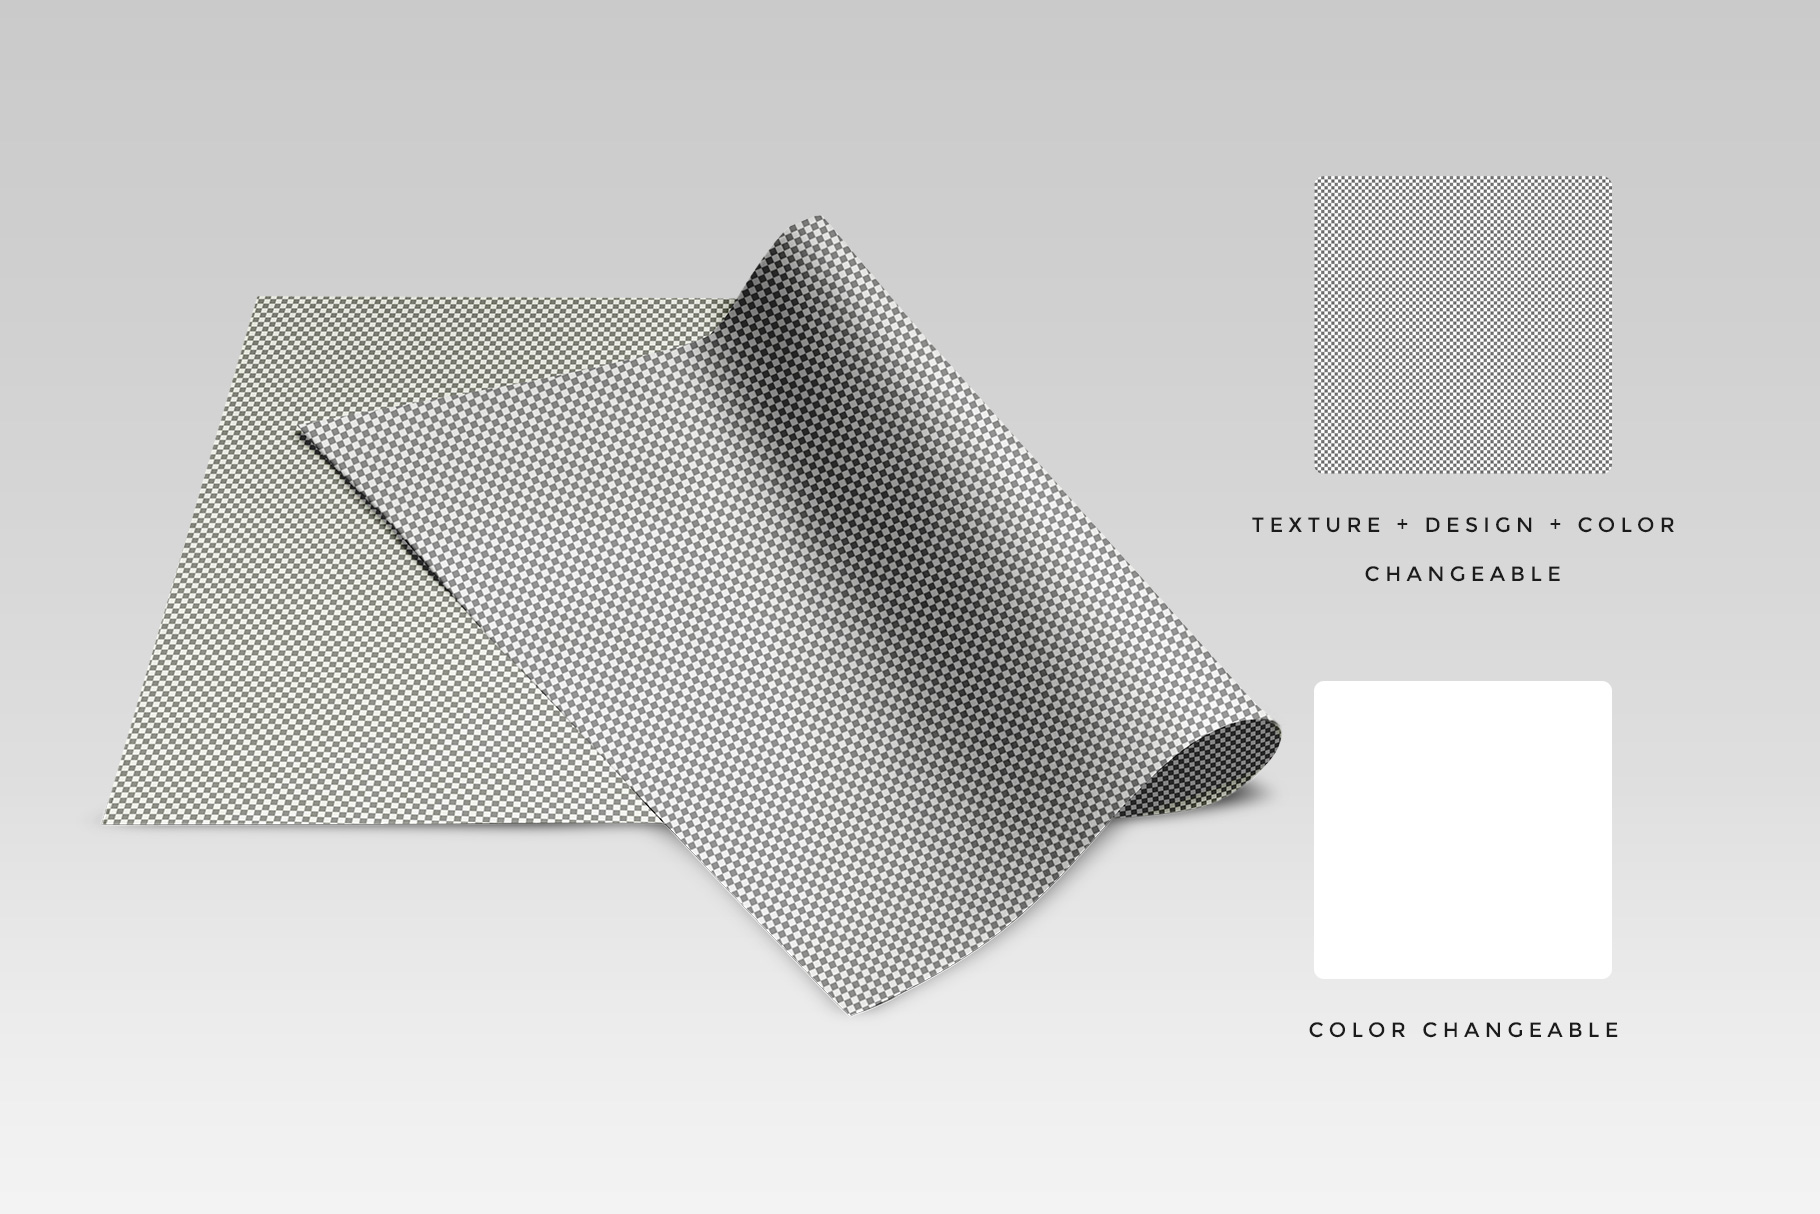 Top View Folded Wrapping Paper Mockup